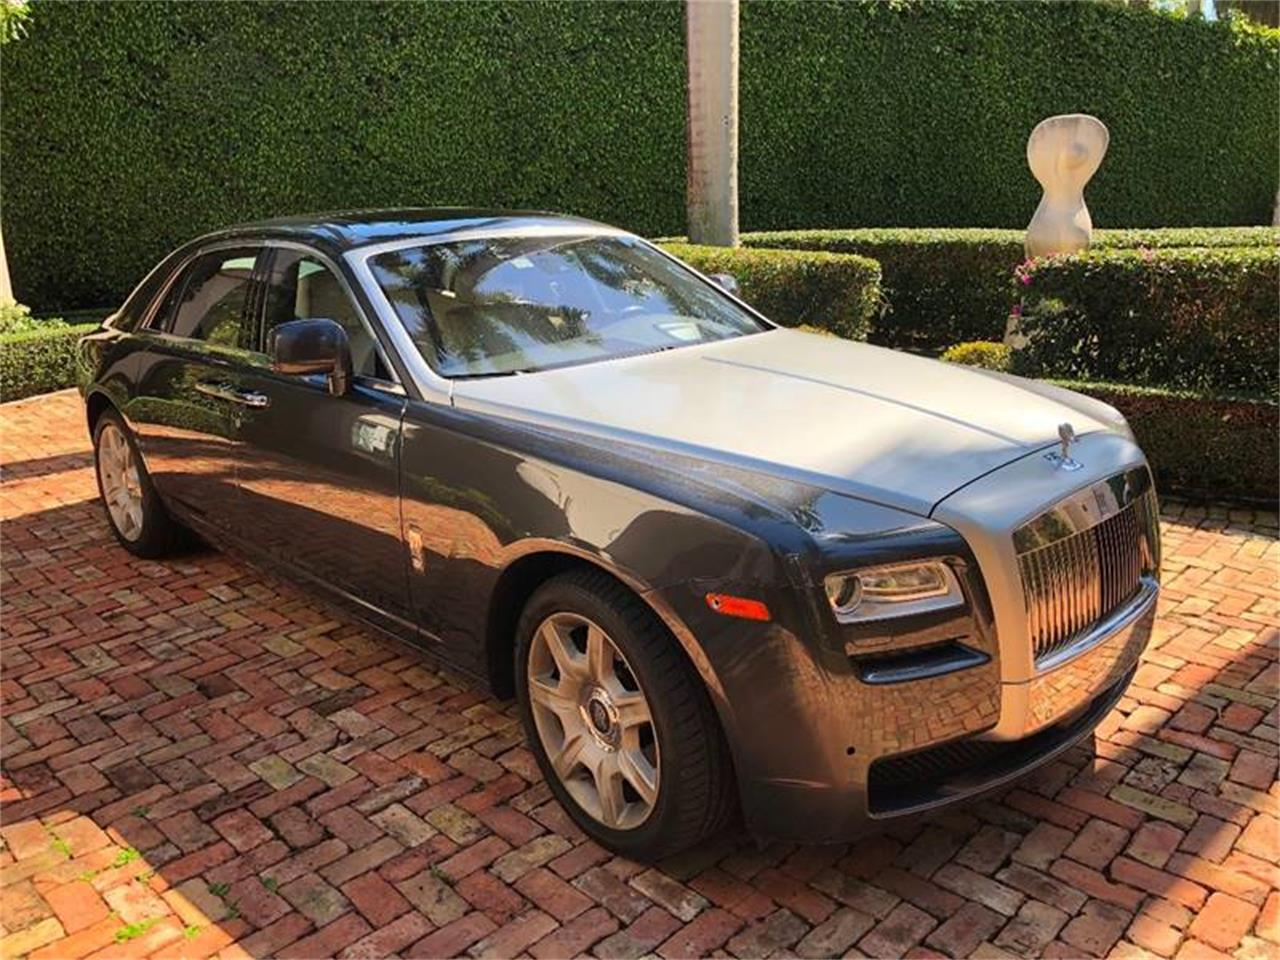 2012 Rolls-Royce Silver Ghost (CC-1188134) for sale in Fort Lauderdale, Florida